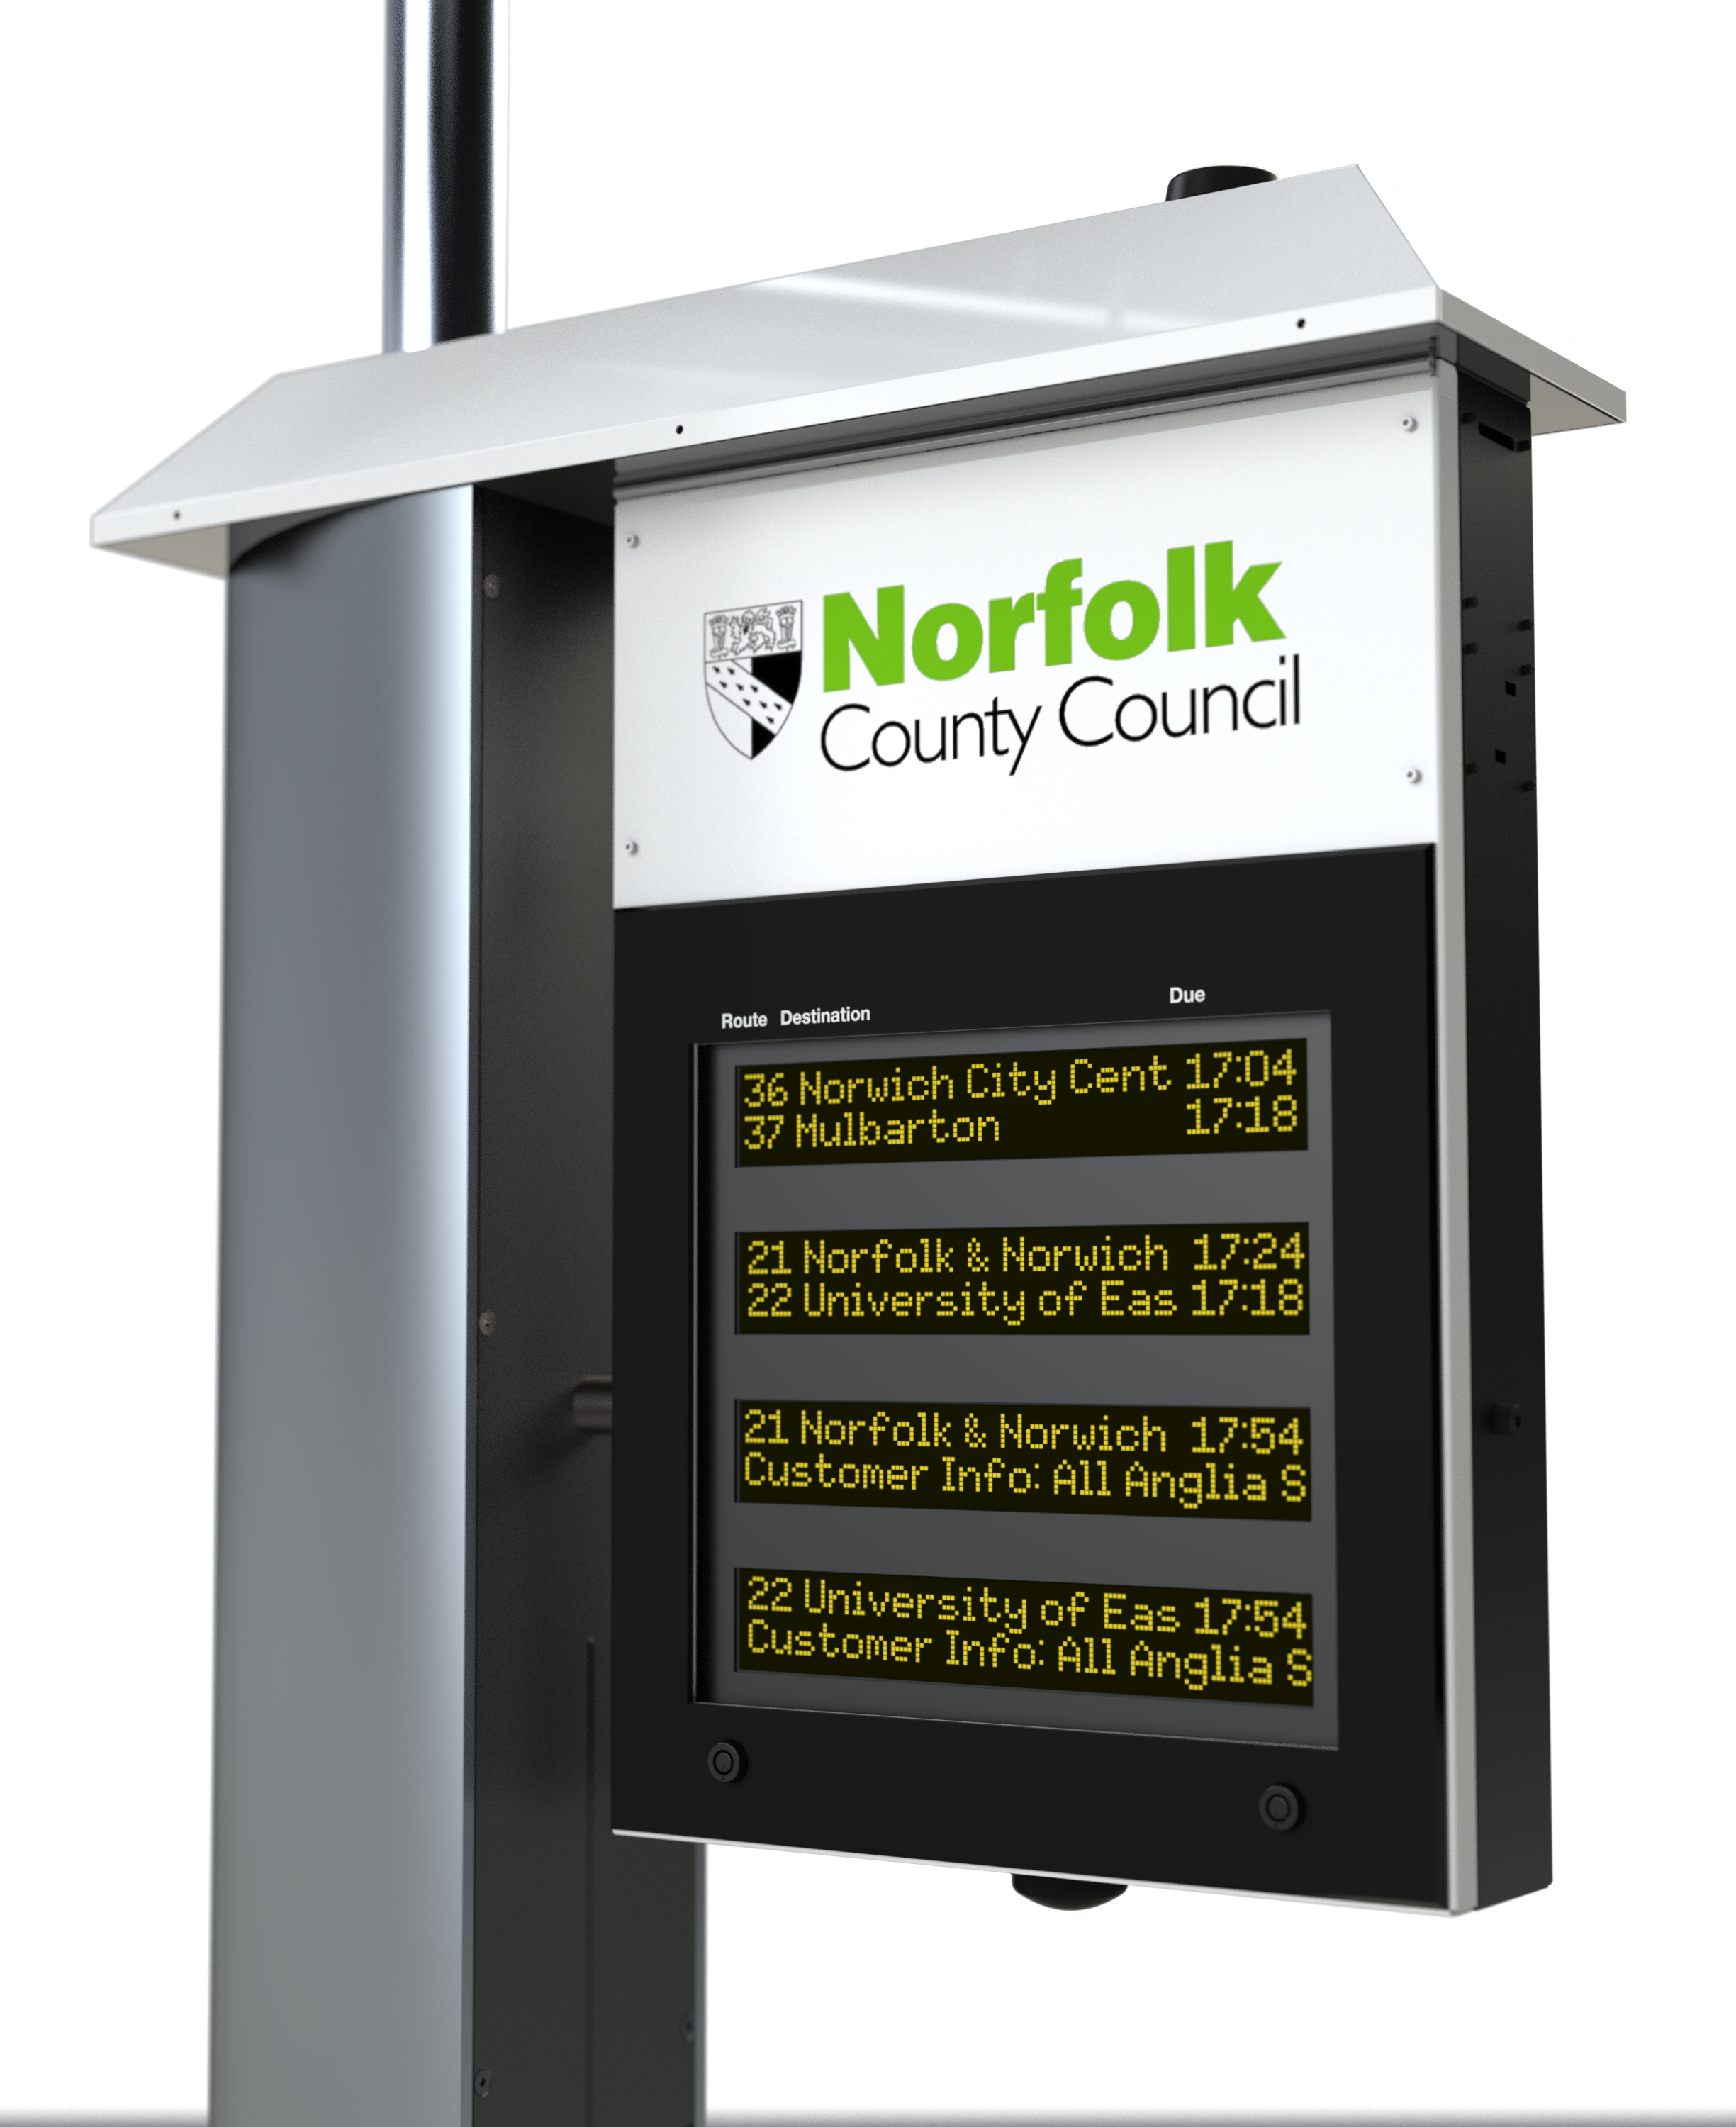 Chronos Solar Powered bus stop flag with the Norfolk County Council Logo and showing bus times. Concept by Nexus Alpha LPS